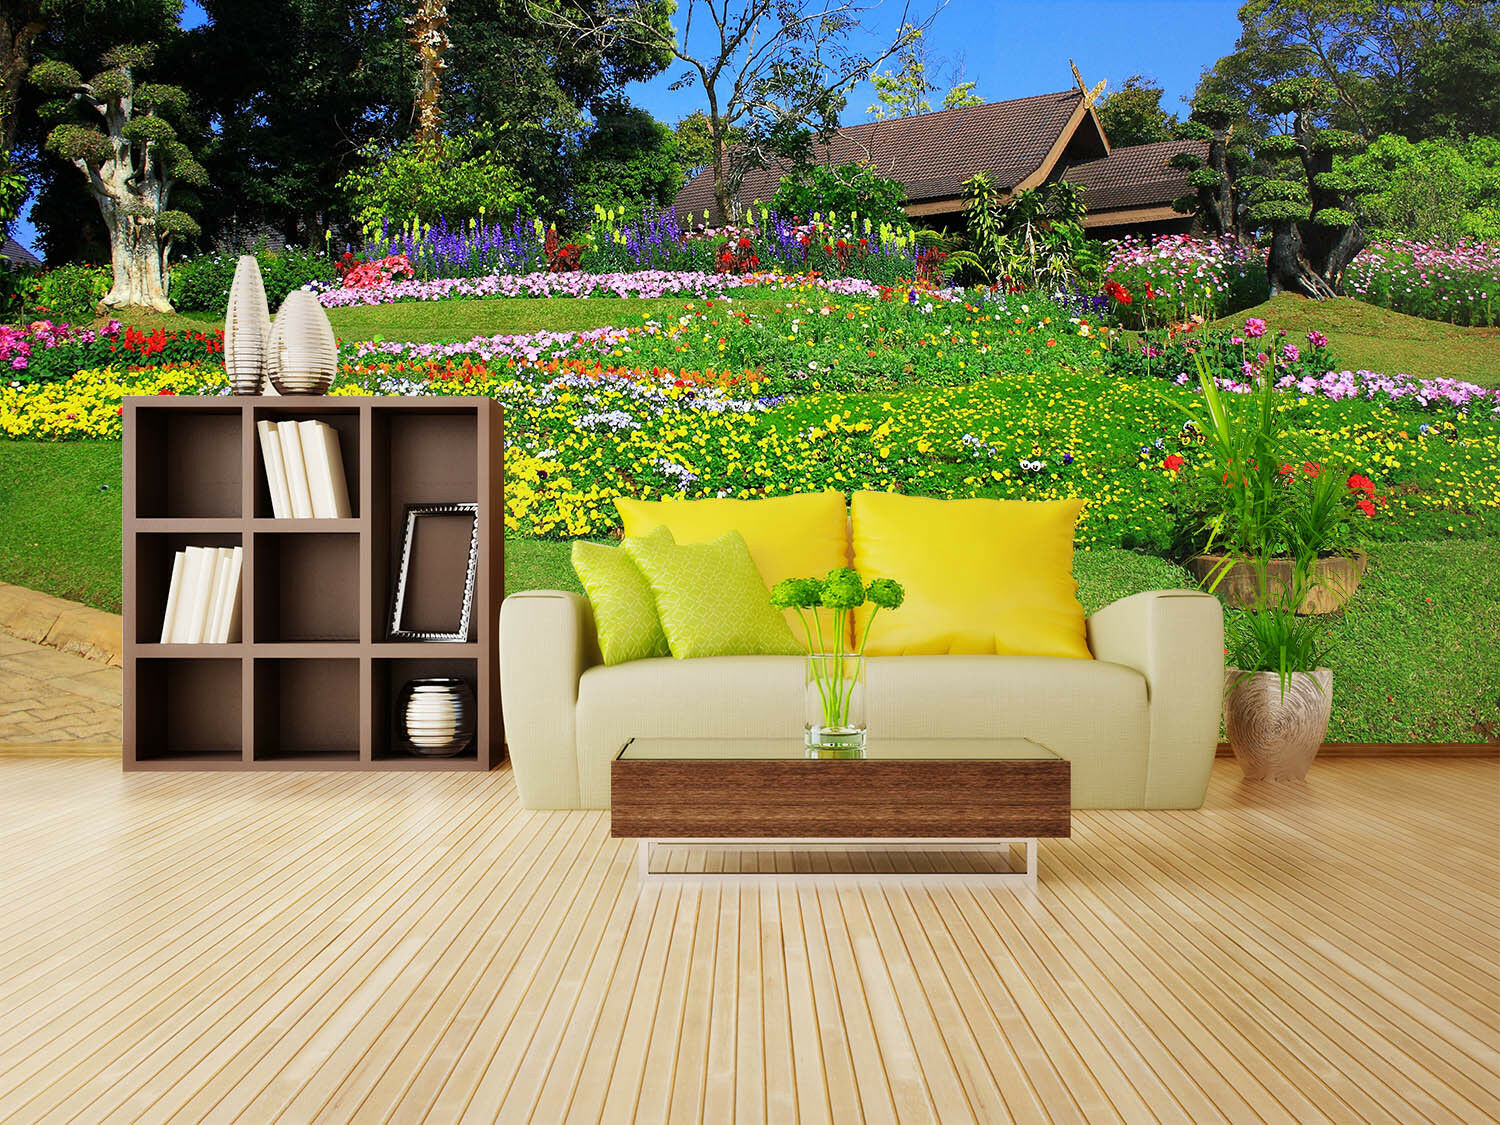 3D Grass Flower 463 Wallpaper Murals Wall Print Wallpaper Mural AJ WALL AU Lemon